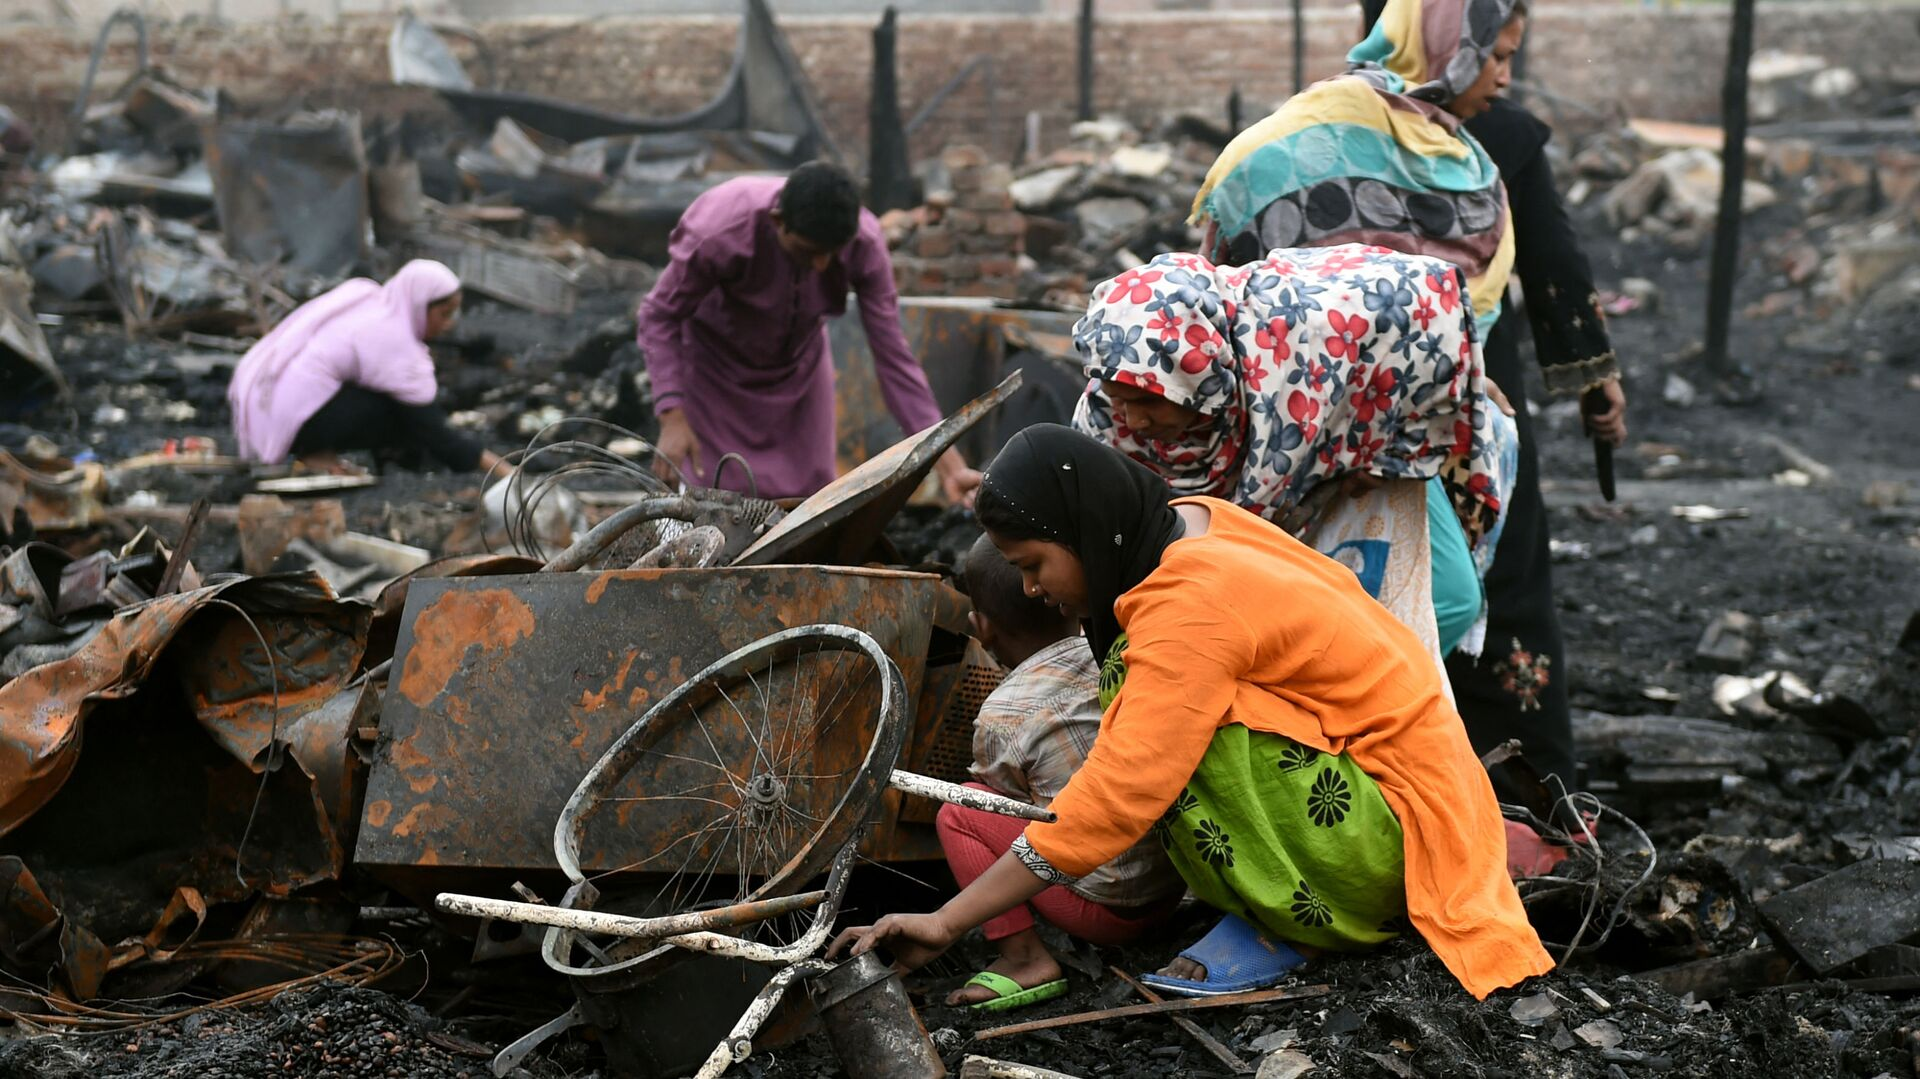 Rohingya refugees look for their belongings in New Delhi on April 16, 2018, following a fire that broke out at their camp early April 15 that left around 200 people homeless.  - Sputnik International, 1920, 24.09.2021